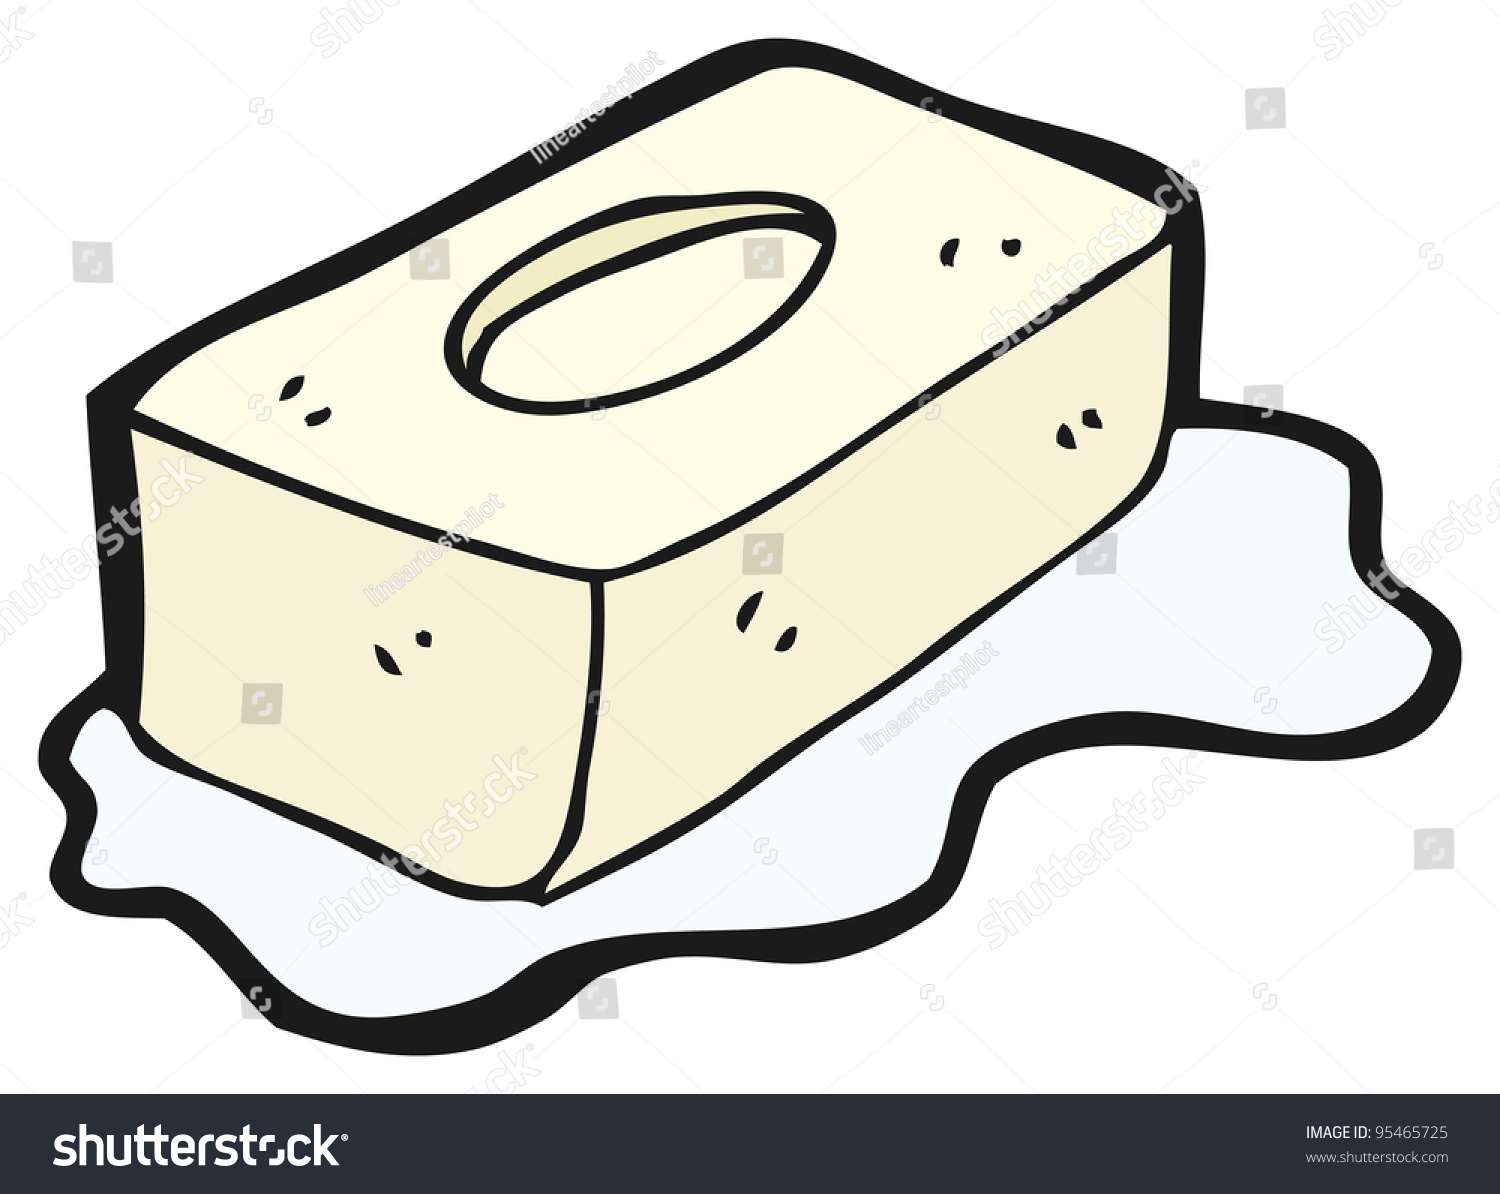 how to draw a soap bar